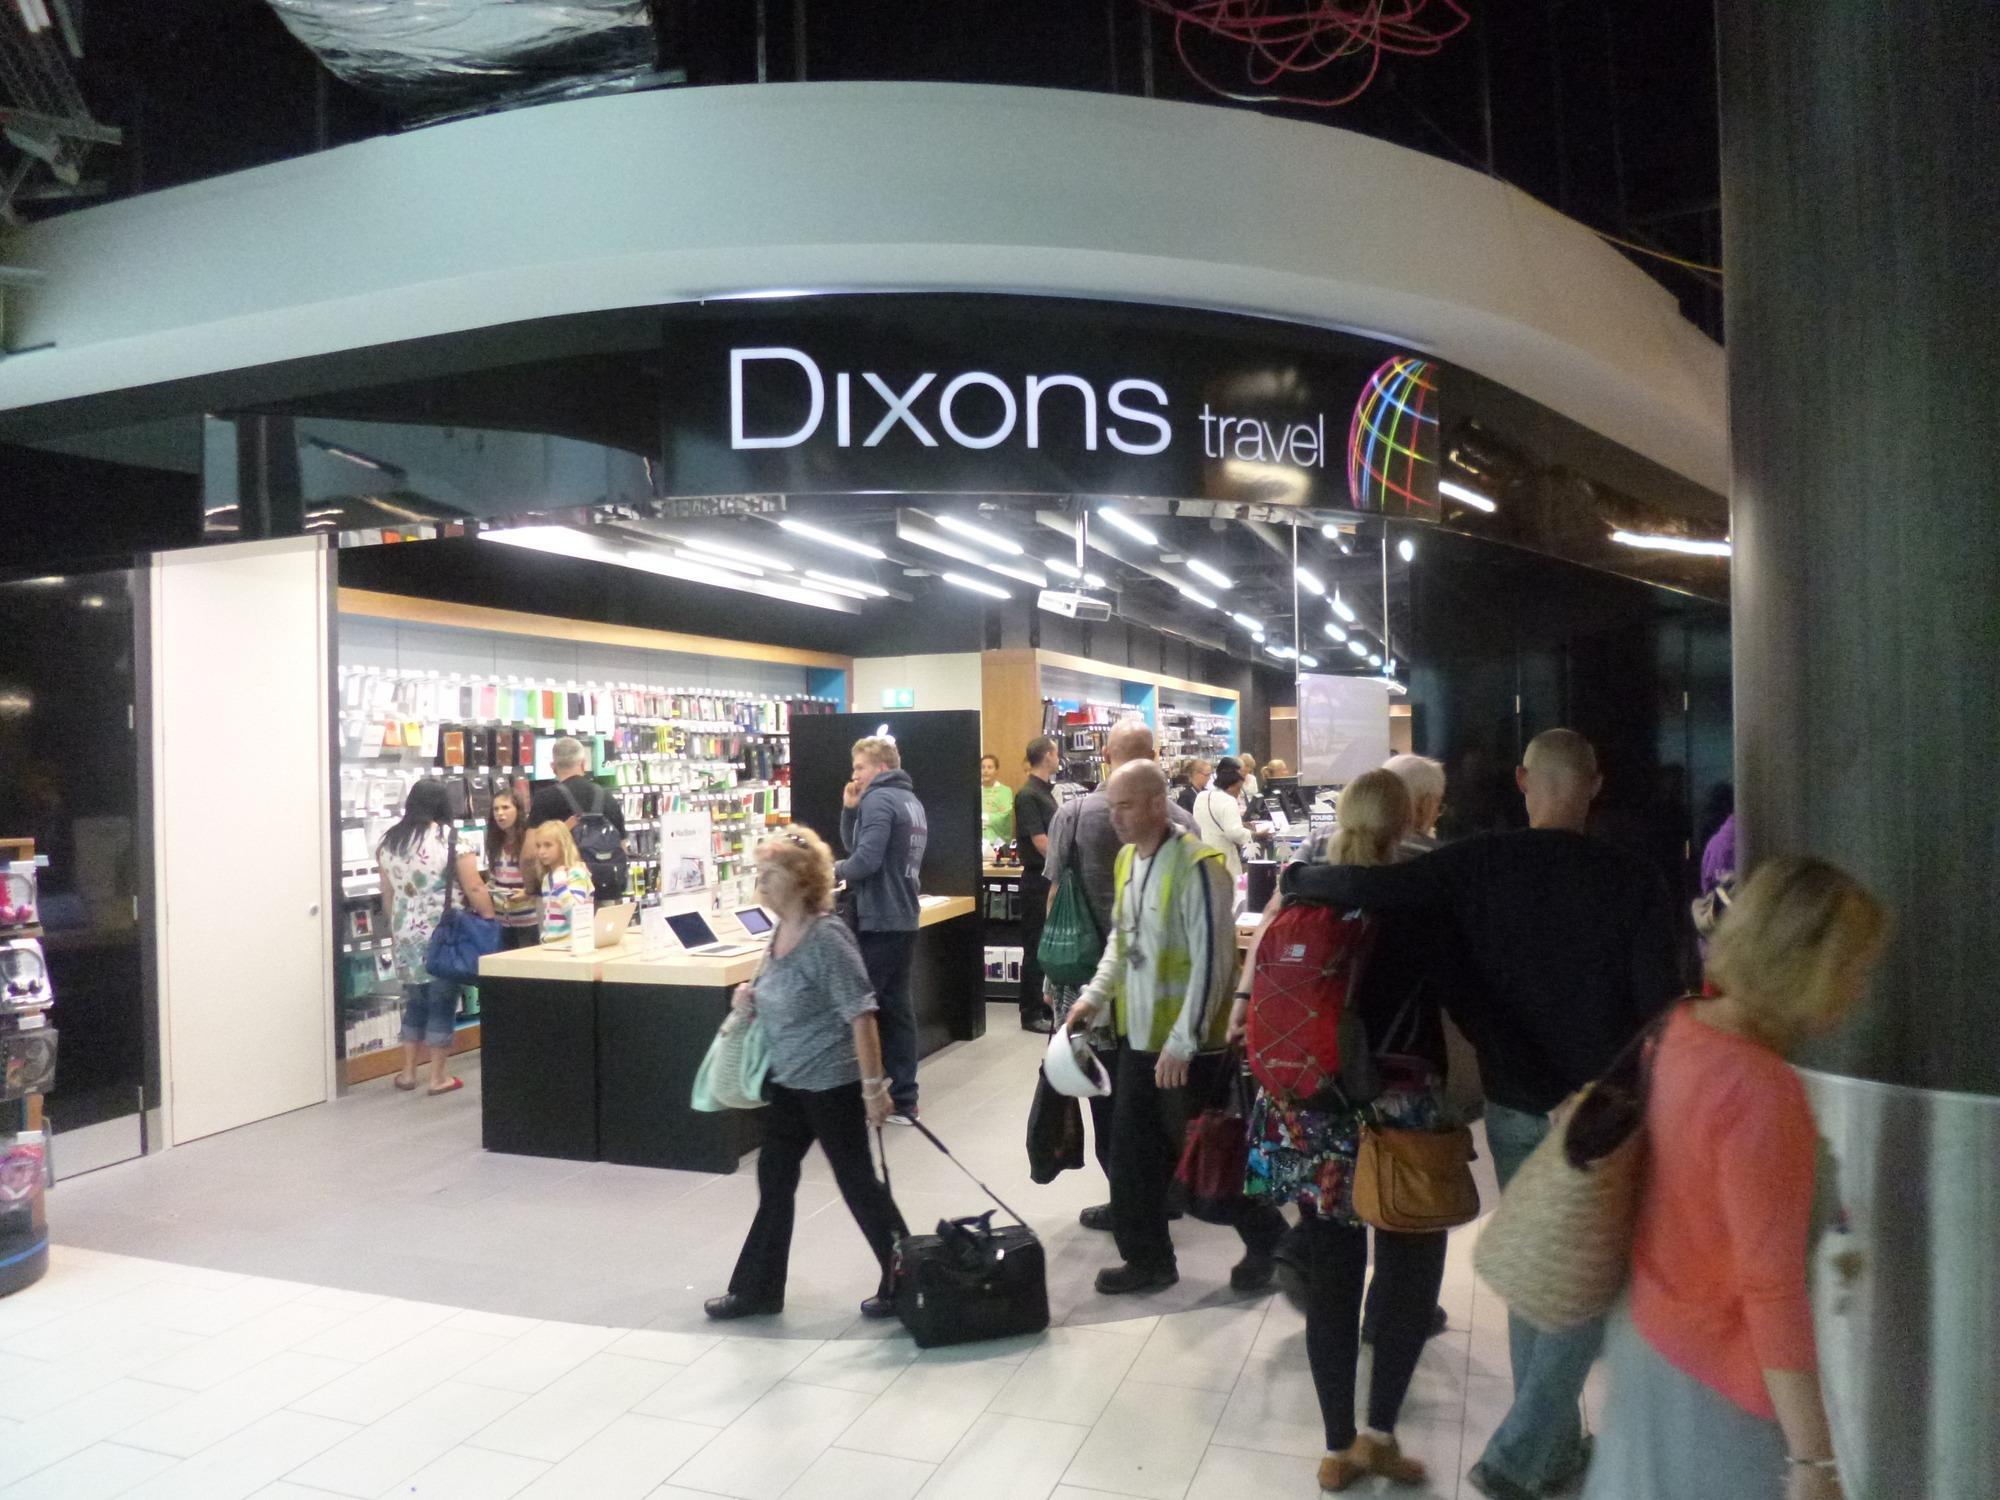 In pictures: Dixons reveals new look travel store at Gatwick